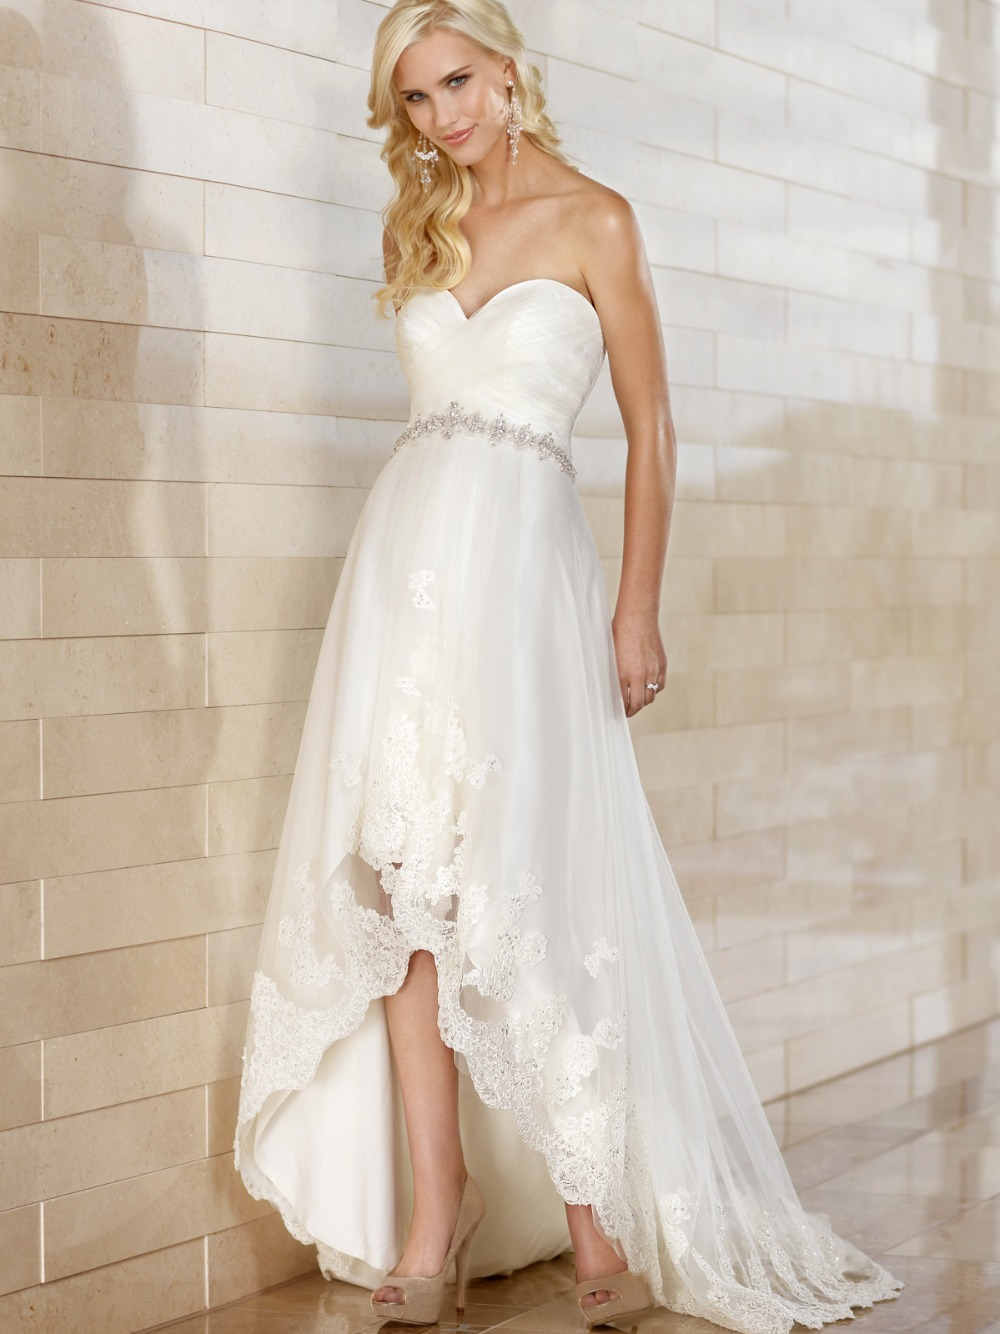 Wedding dresses: wholesale wedding dresses from china